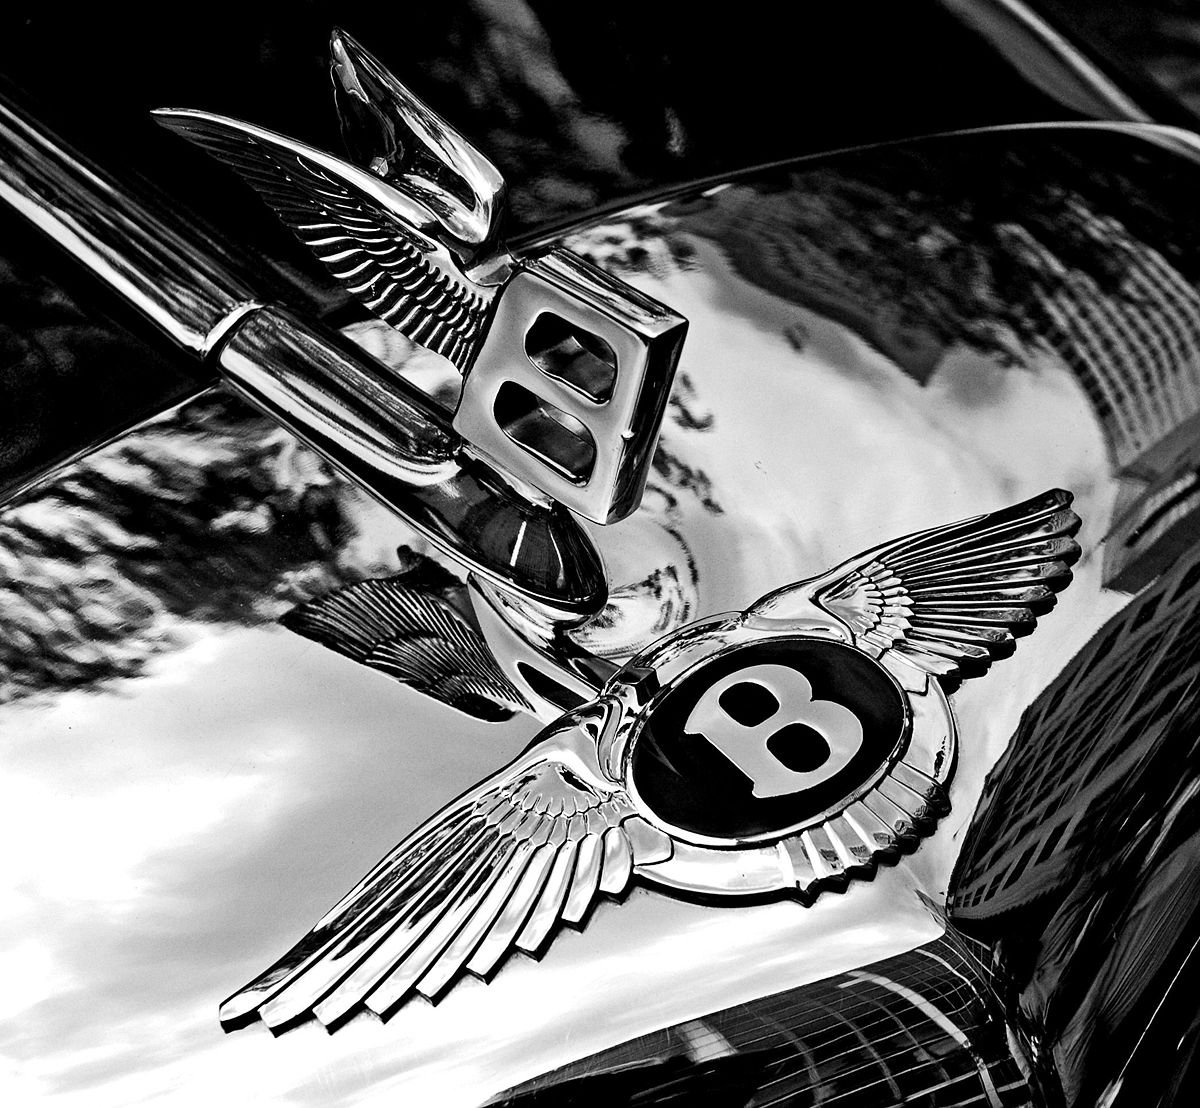 1200px-bentley_badge_and_hood_ornament-bw